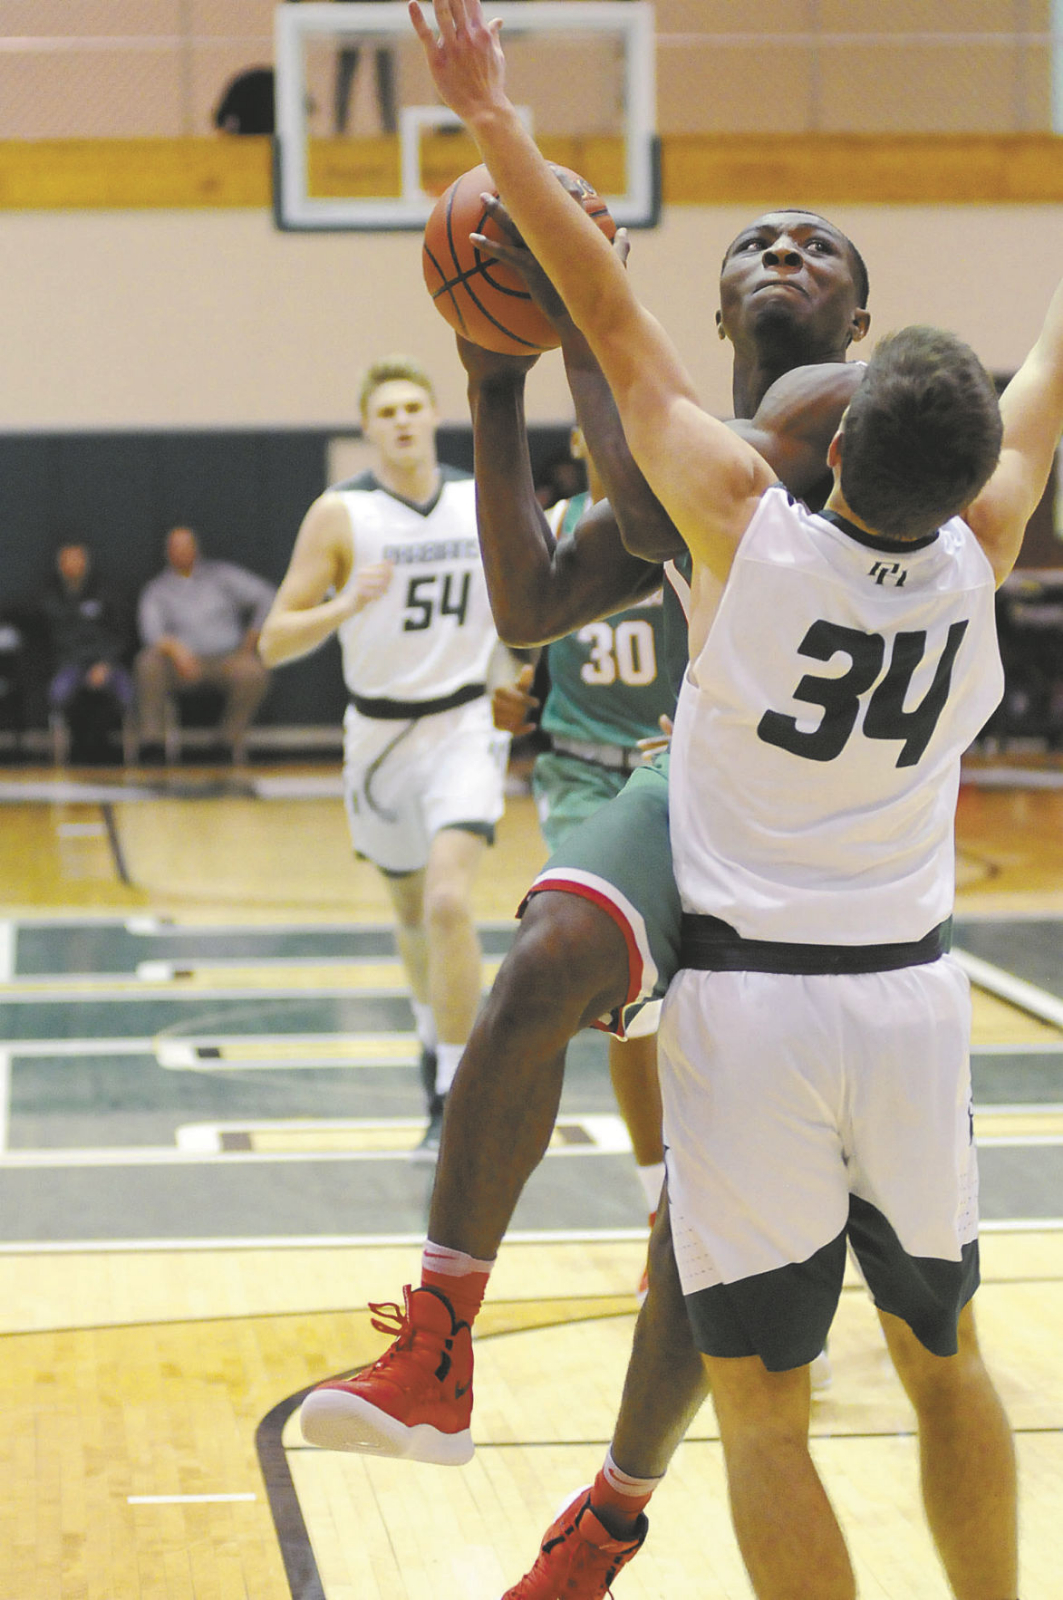 Indians defeat Arabians at Pendleton Heights